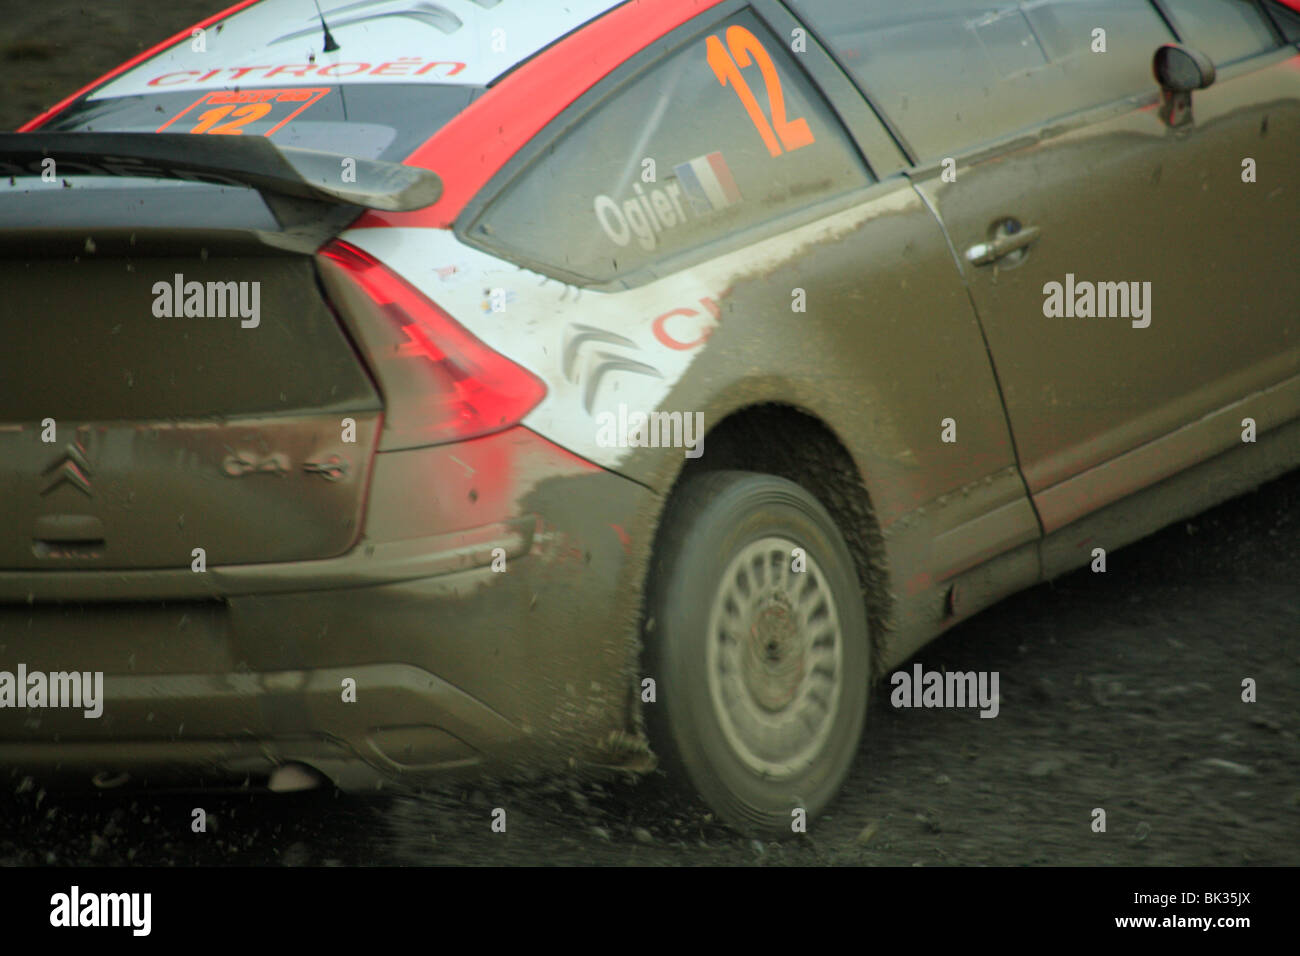 Competitor in the World Rally Championship special stage held in the Hafren Forest, near Llanidloes, Powys, Wales. - Stock Image